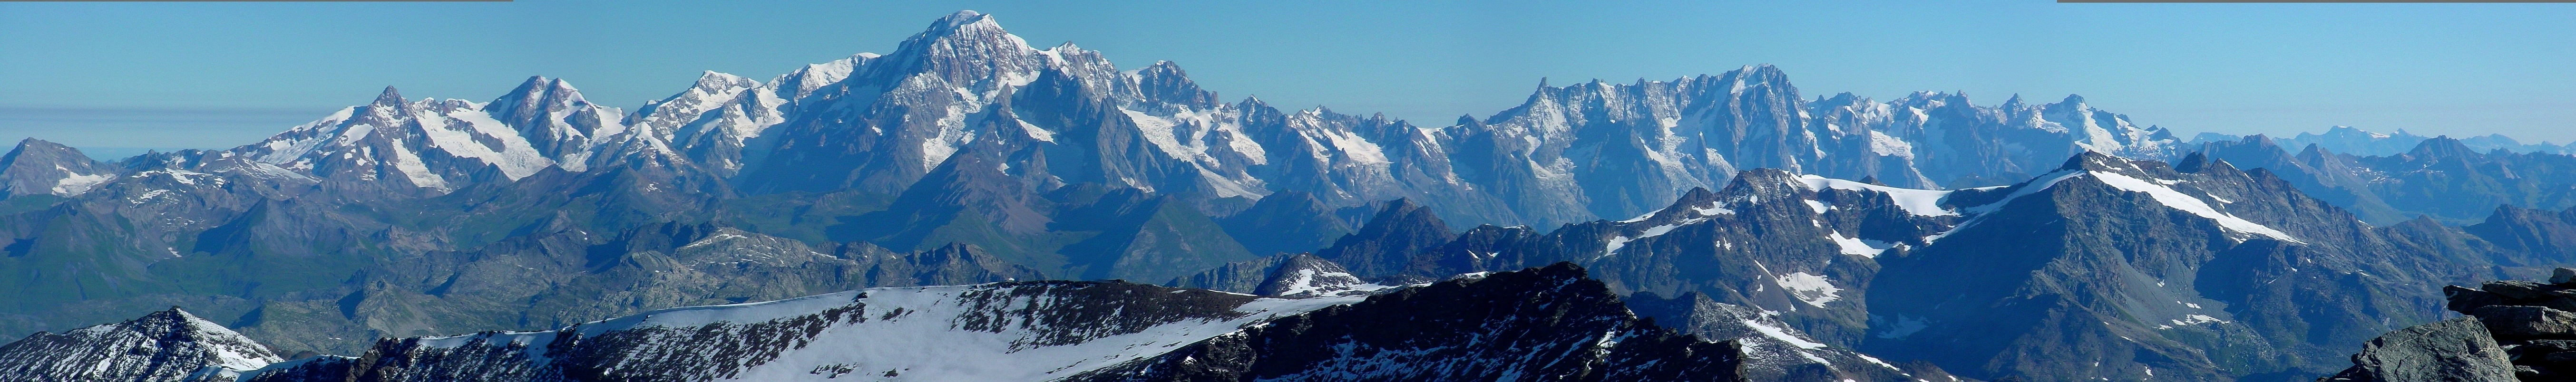 http://www.lesia.obspm.fr/perso/jean-marie-malherbe/panoramas1/pano-MB-2006/Chaine-Mont-Blanc.JPG